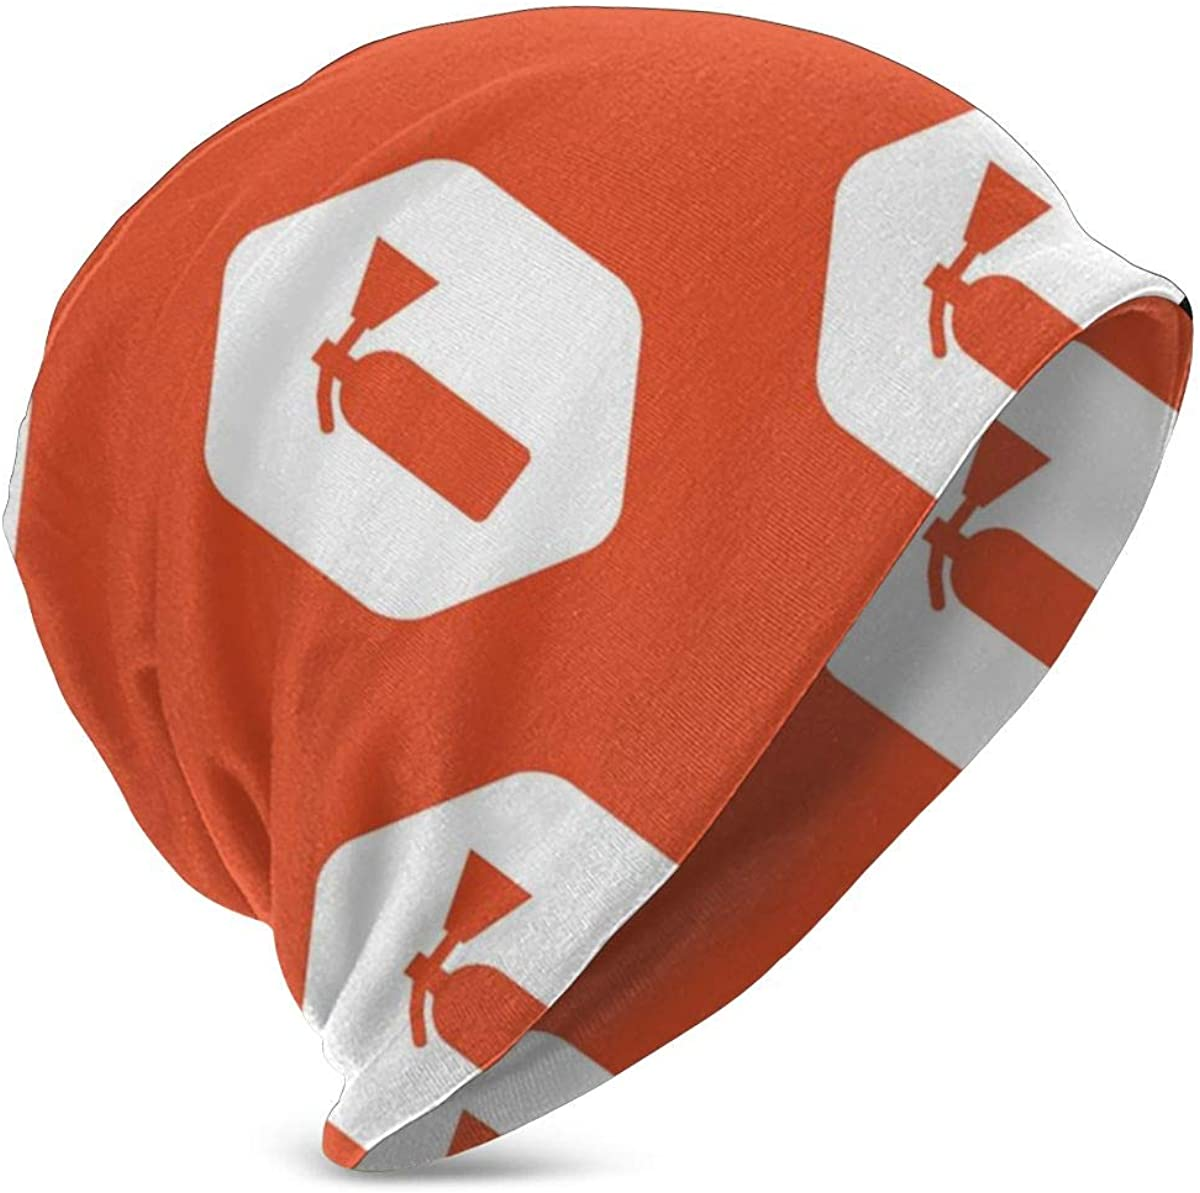 Orange Hexagon Fire Extinguisher Child Warm Winter Hats Premium Slouchy Knit Beanie Cap